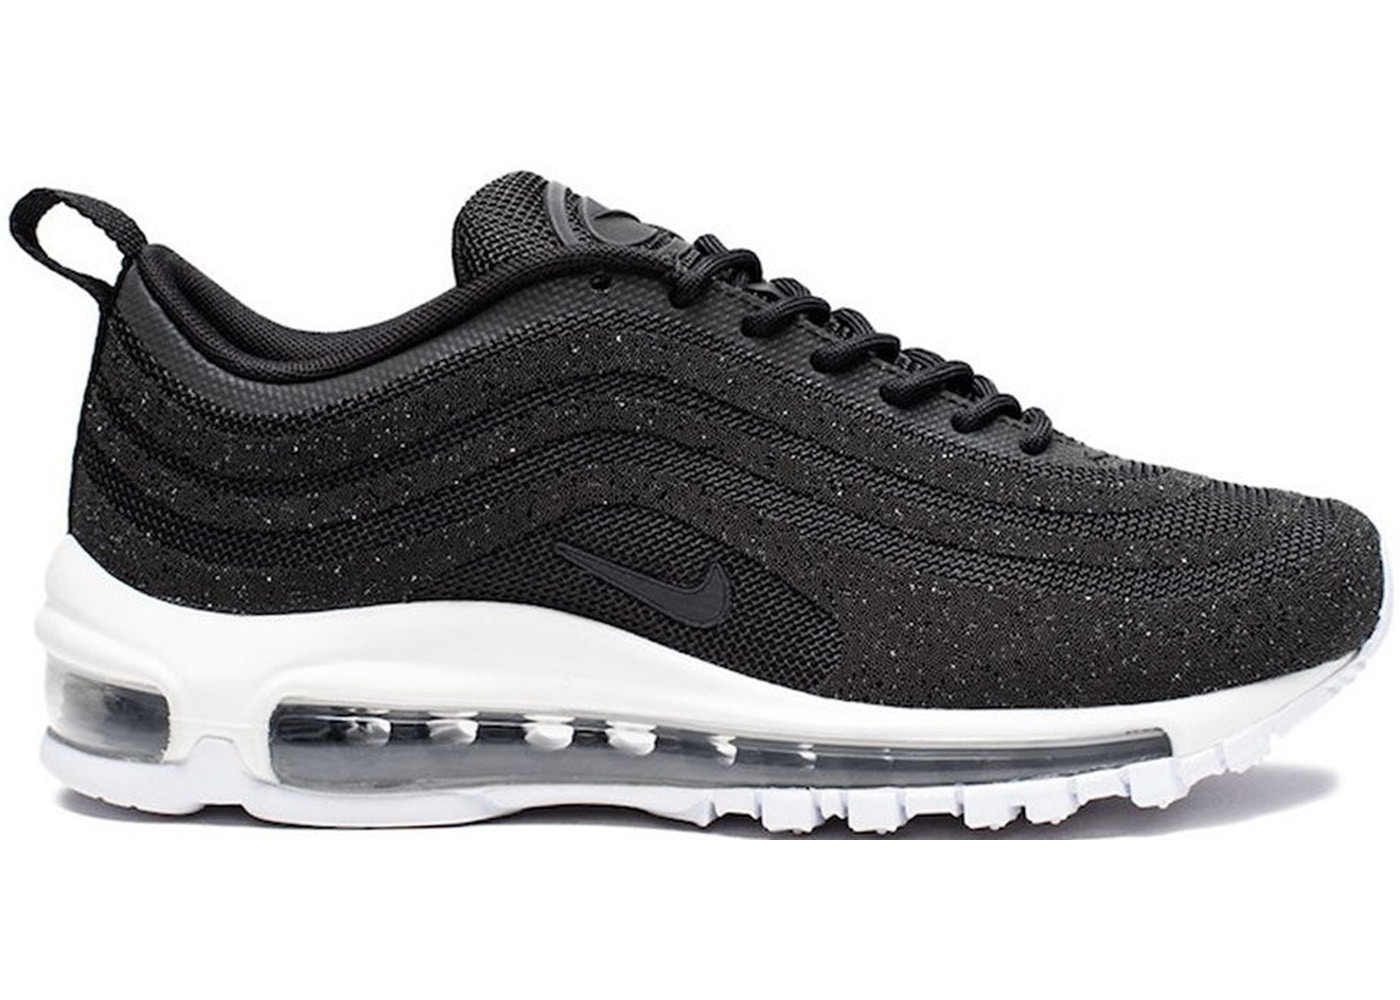 quality design c2964 0bbae Air Max 97 LX Swarovski Black (W) - 927508-001